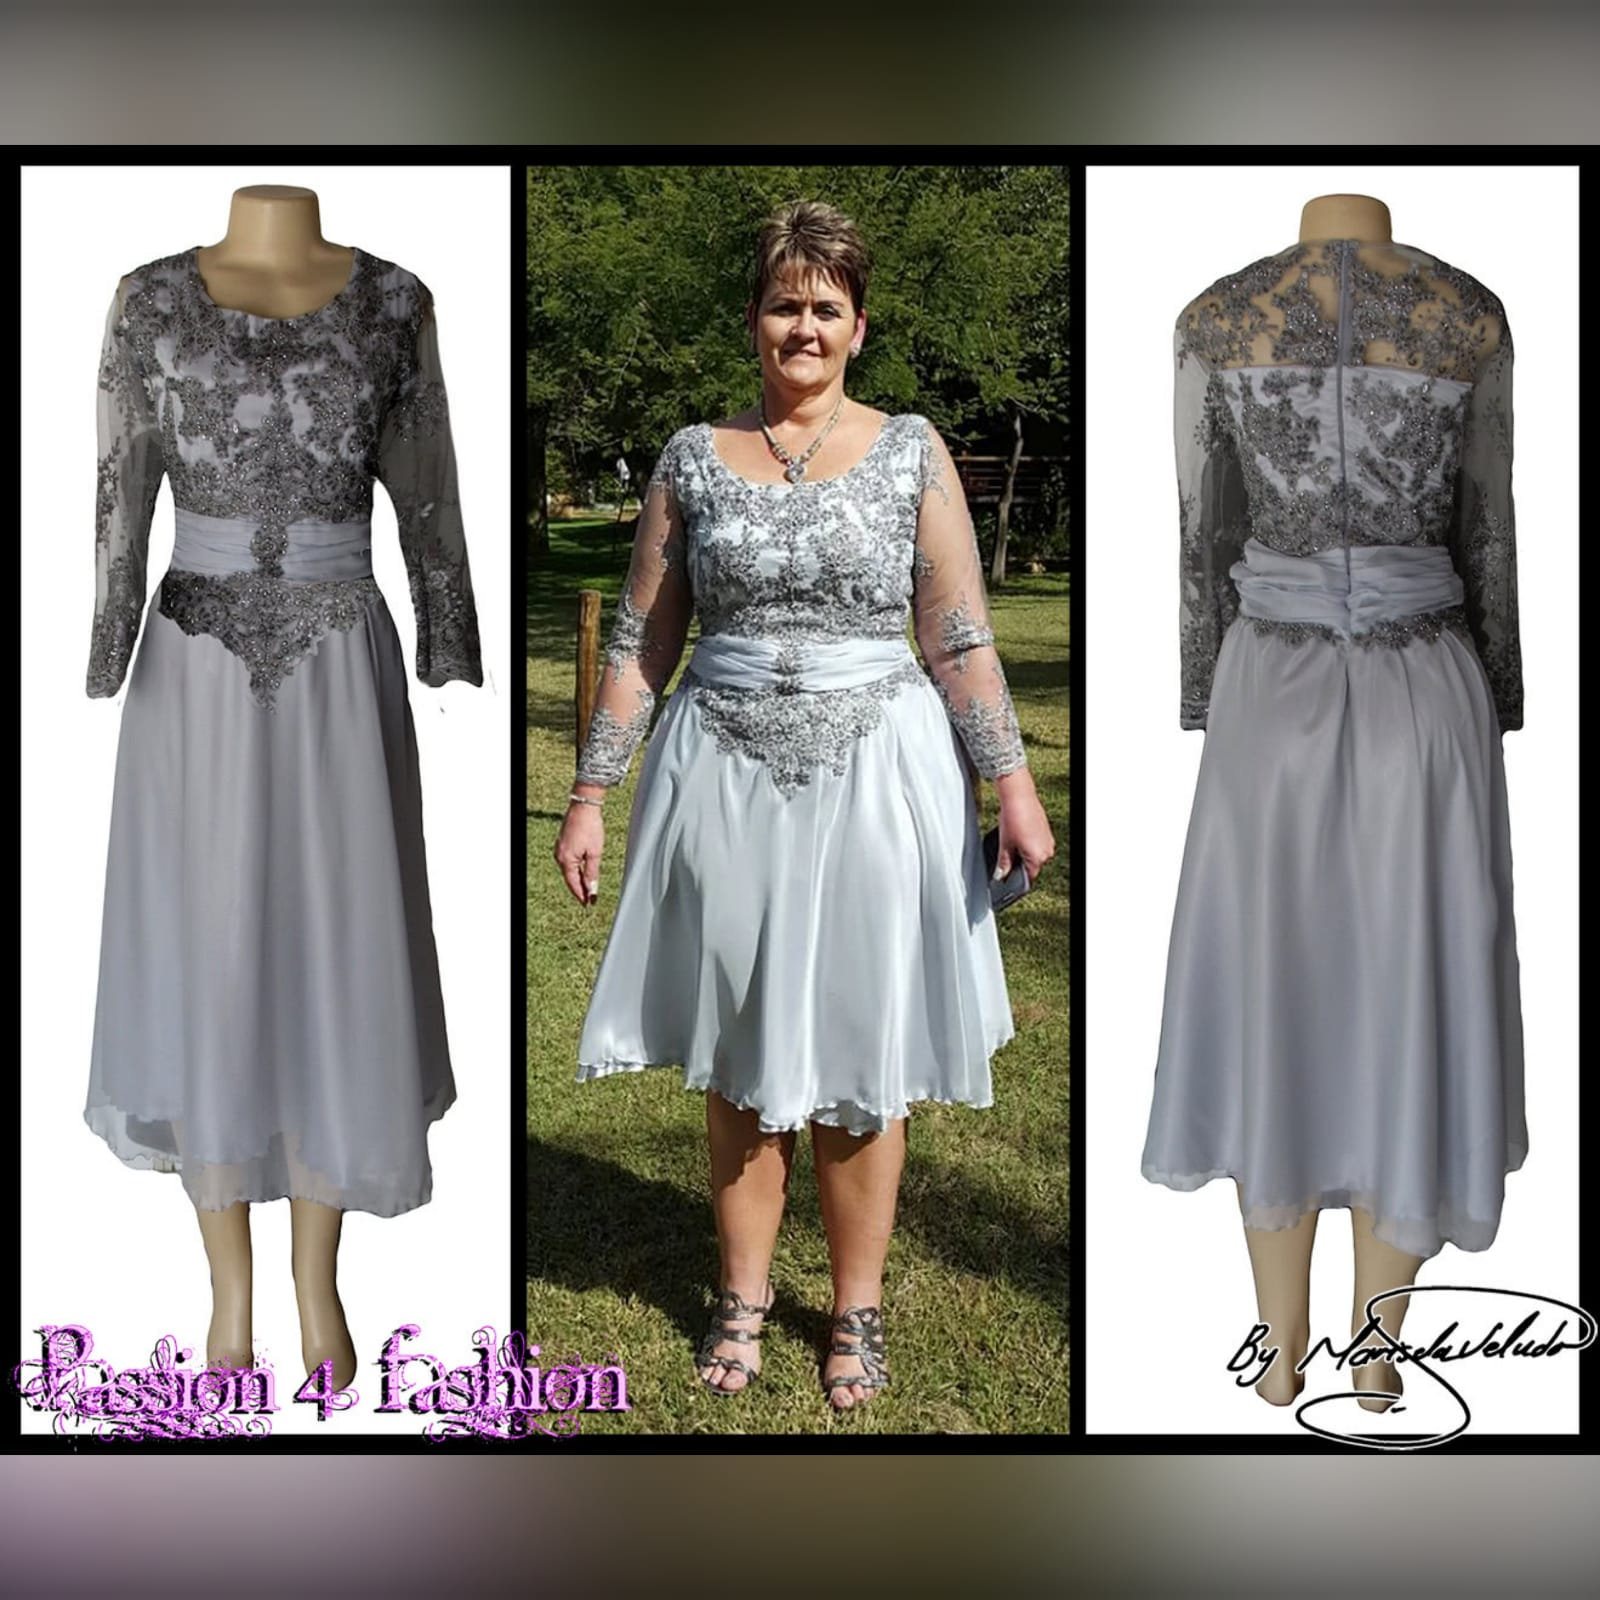 Grey knee length mother of the bride dress 4 grey knee length mother of the bride dress detailed with a ruched belt and lace on the bodice and sleeves.